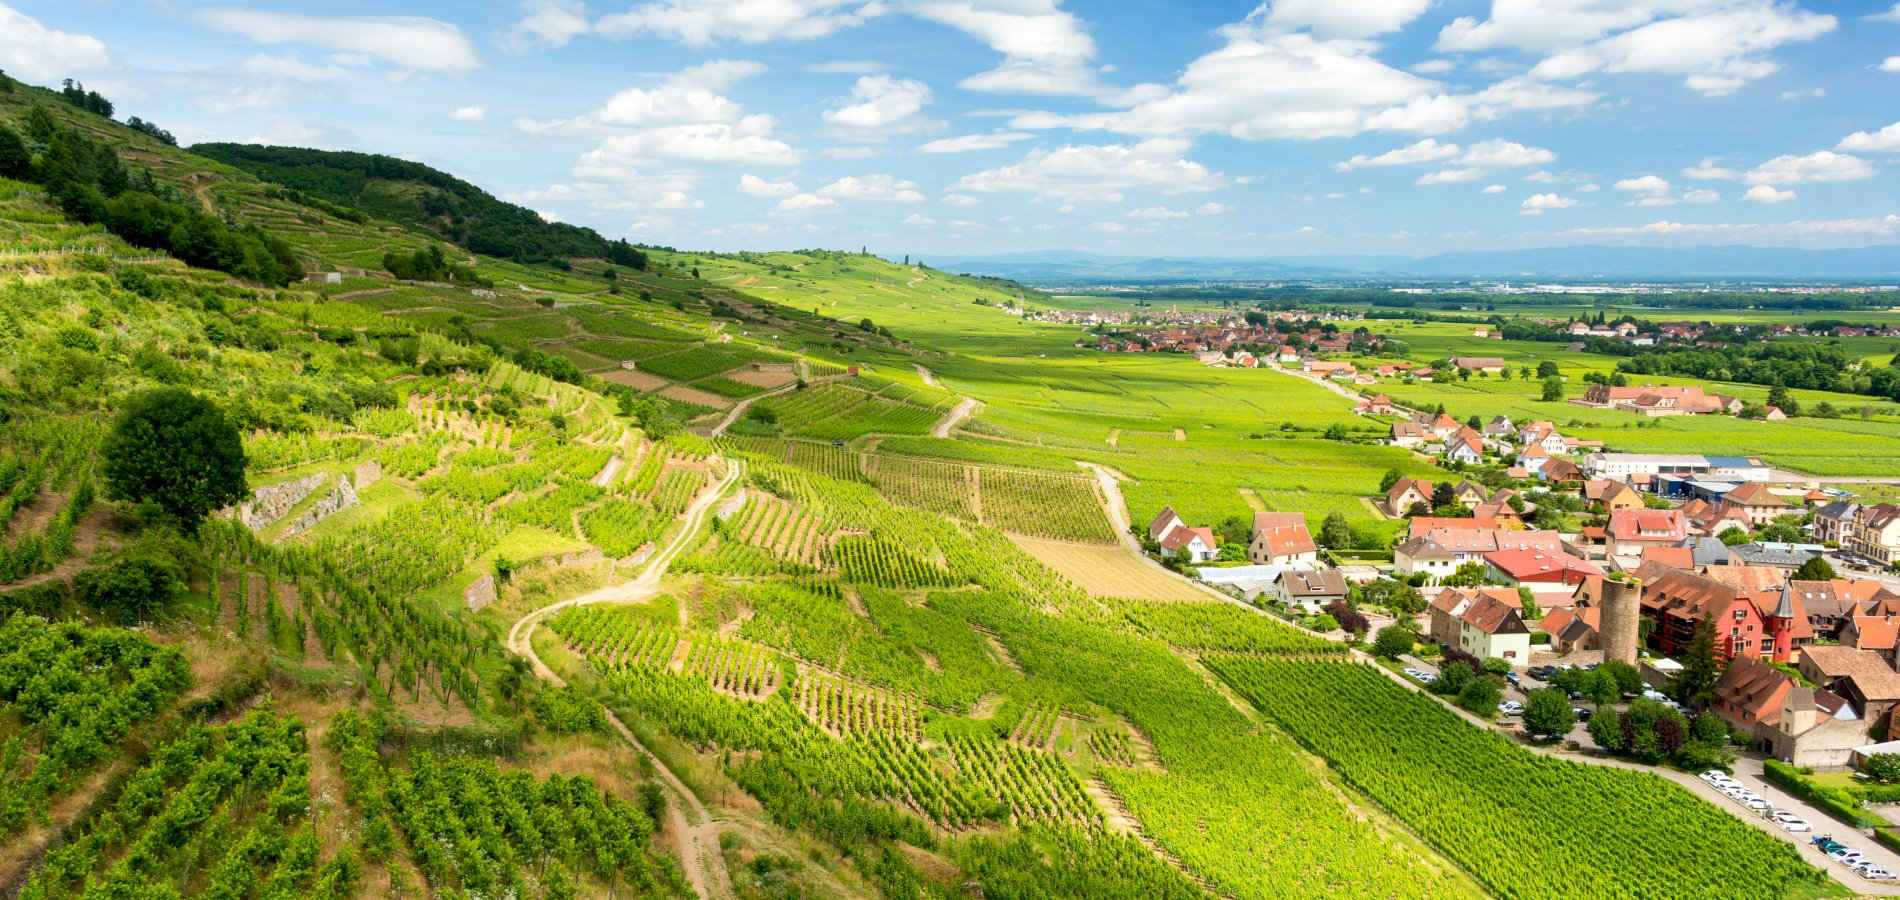 Ophorus Tours - Special Offer - 3 Days Alsace Small Group Shared Day Trips from Strasbourg